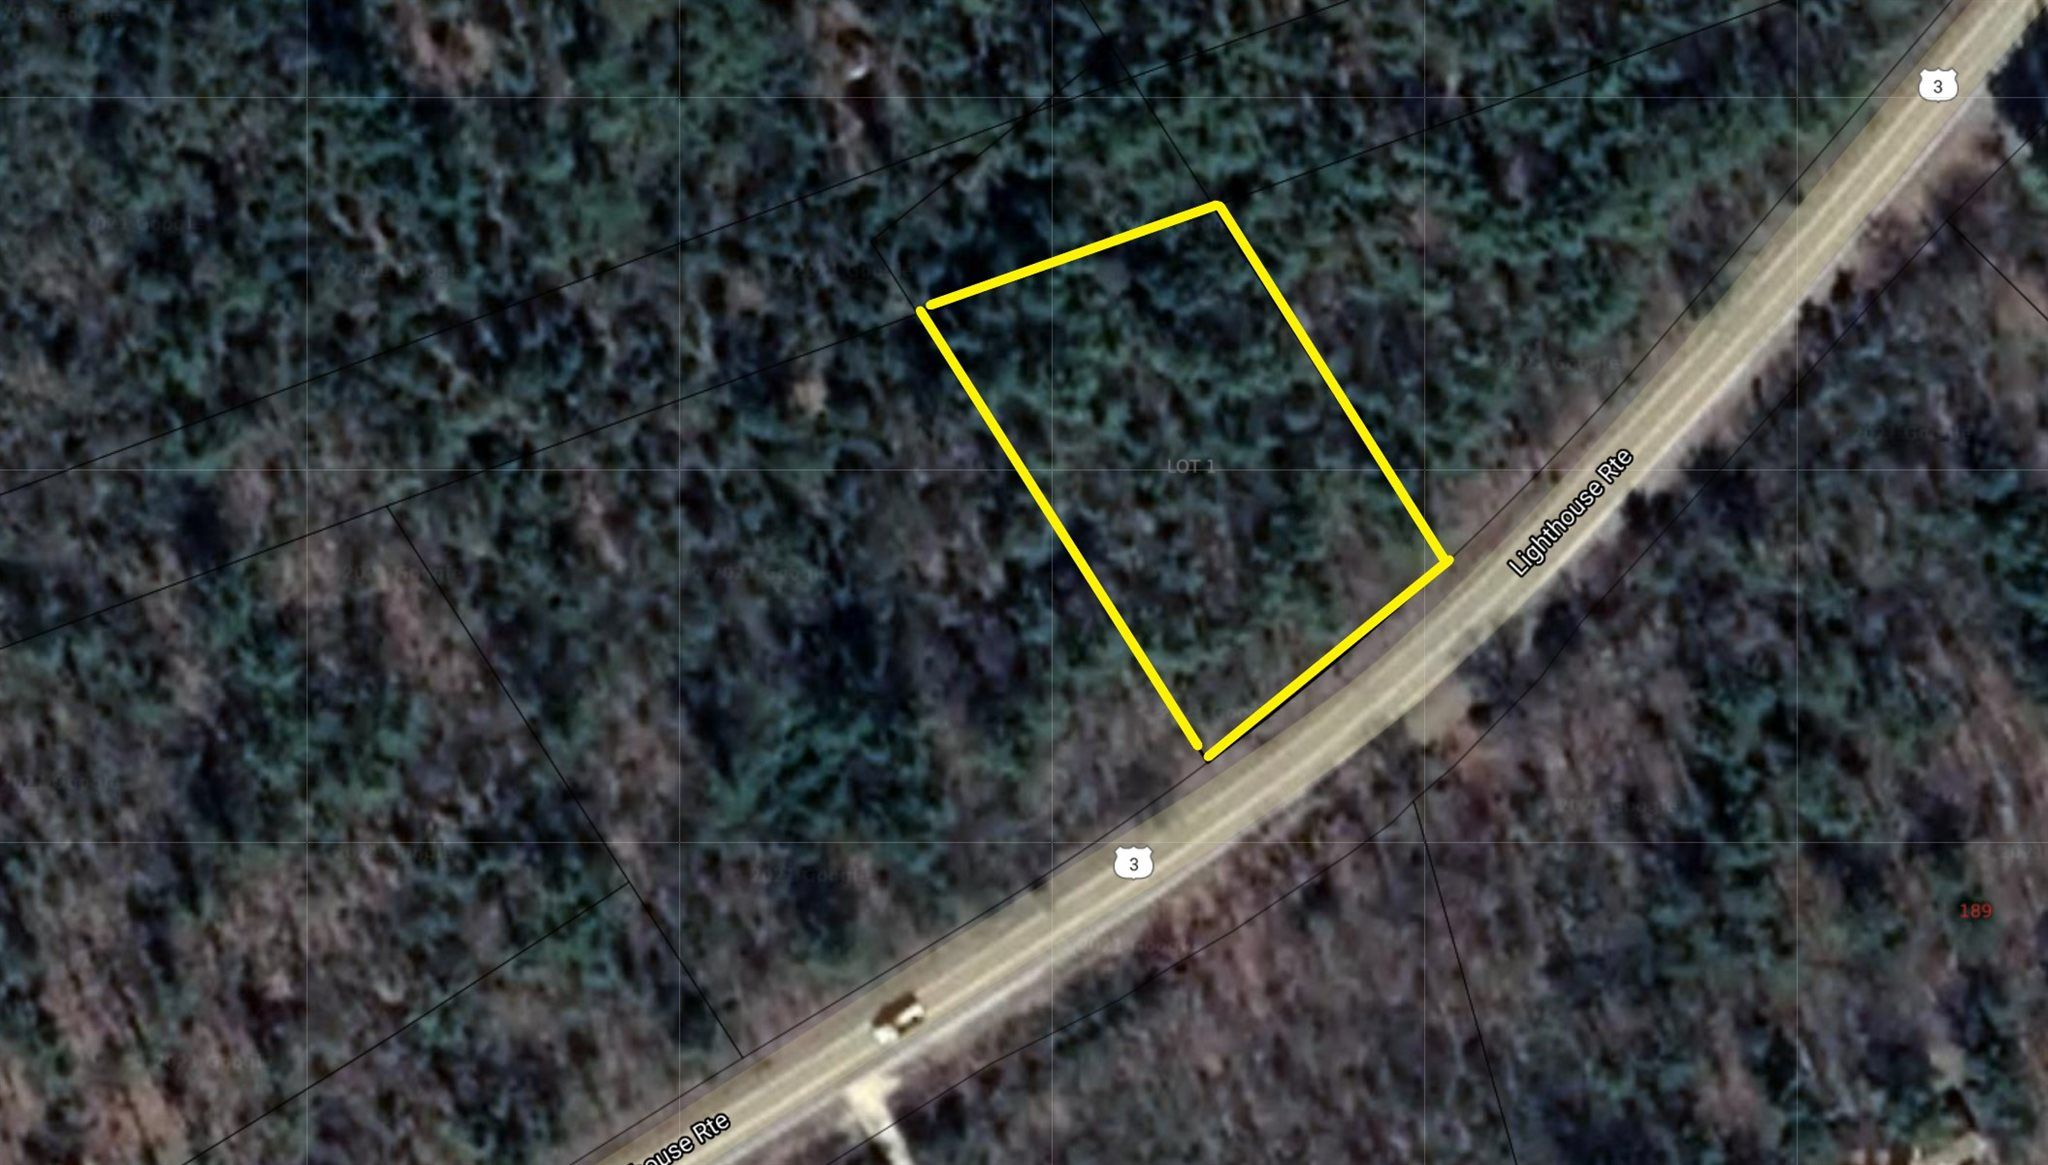 Main Photo: Lot 1 Highway 3 in Reids Hill: 407-Shelburne County Vacant Land for sale (South Shore)  : MLS®# 202108857